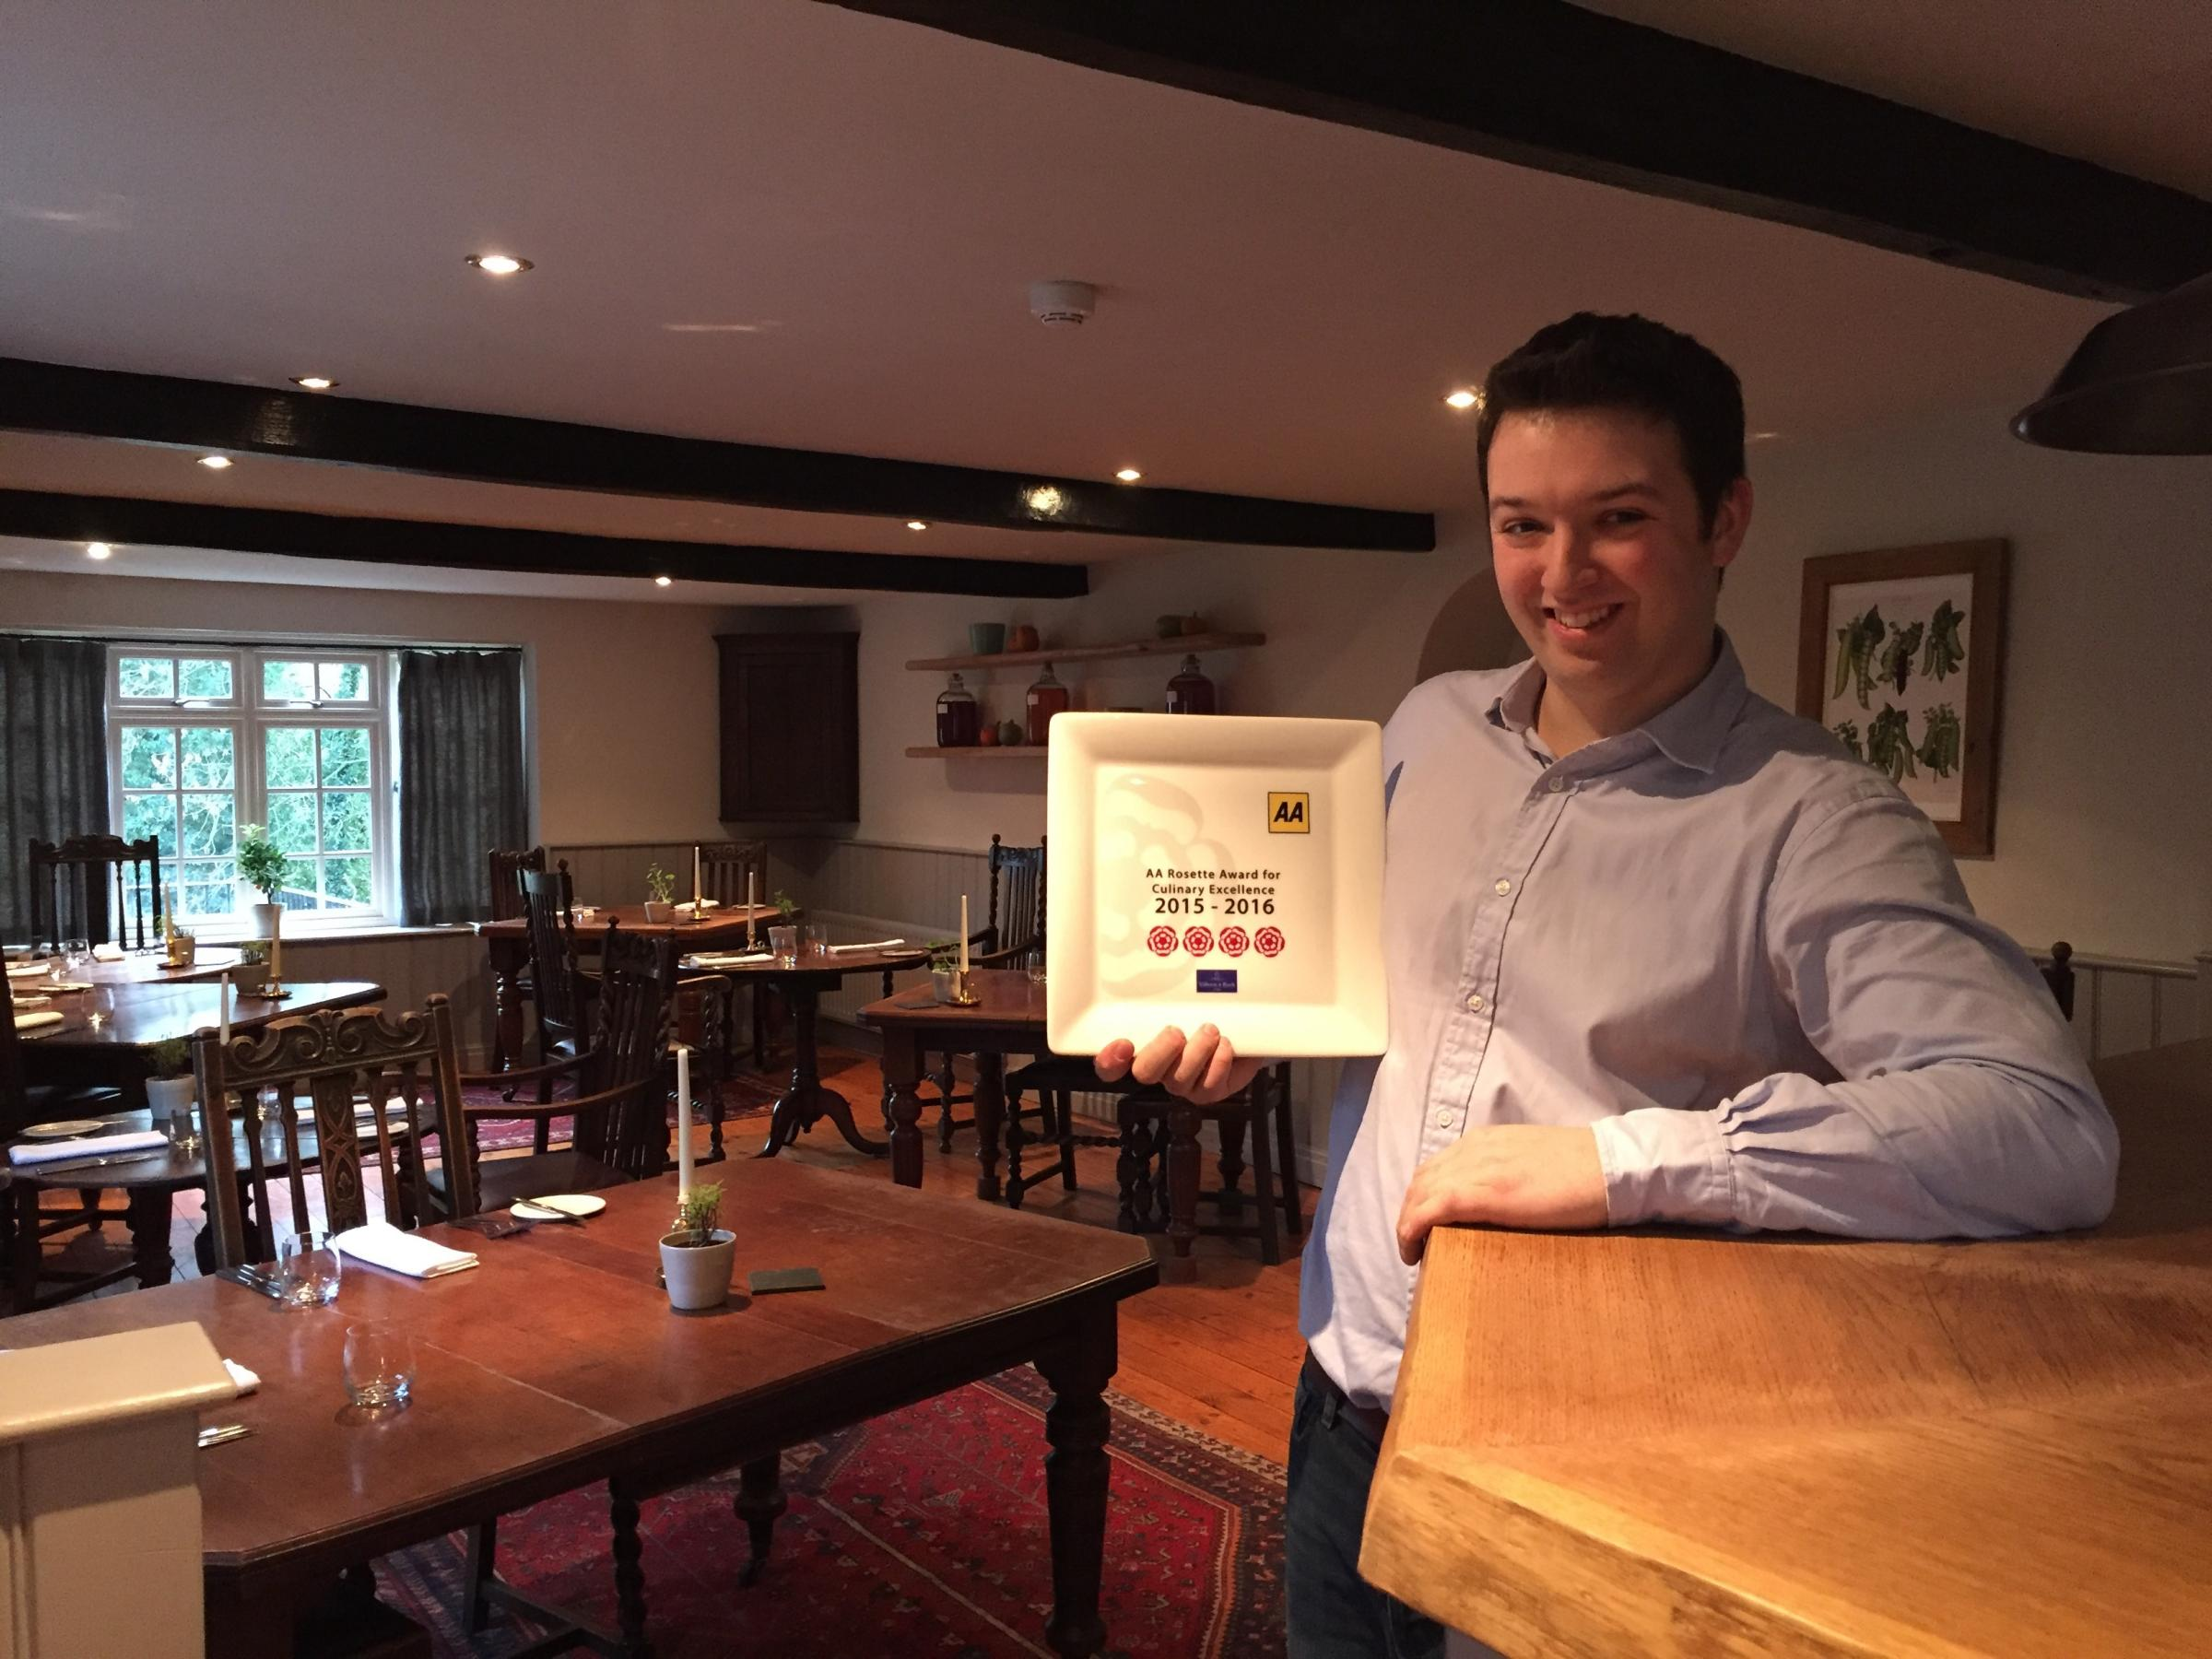 Tommy Banks, head chef at The Black Swan at Oldstead, which has been named the world's best rated restaurant, according to annual TripAdvisor awards